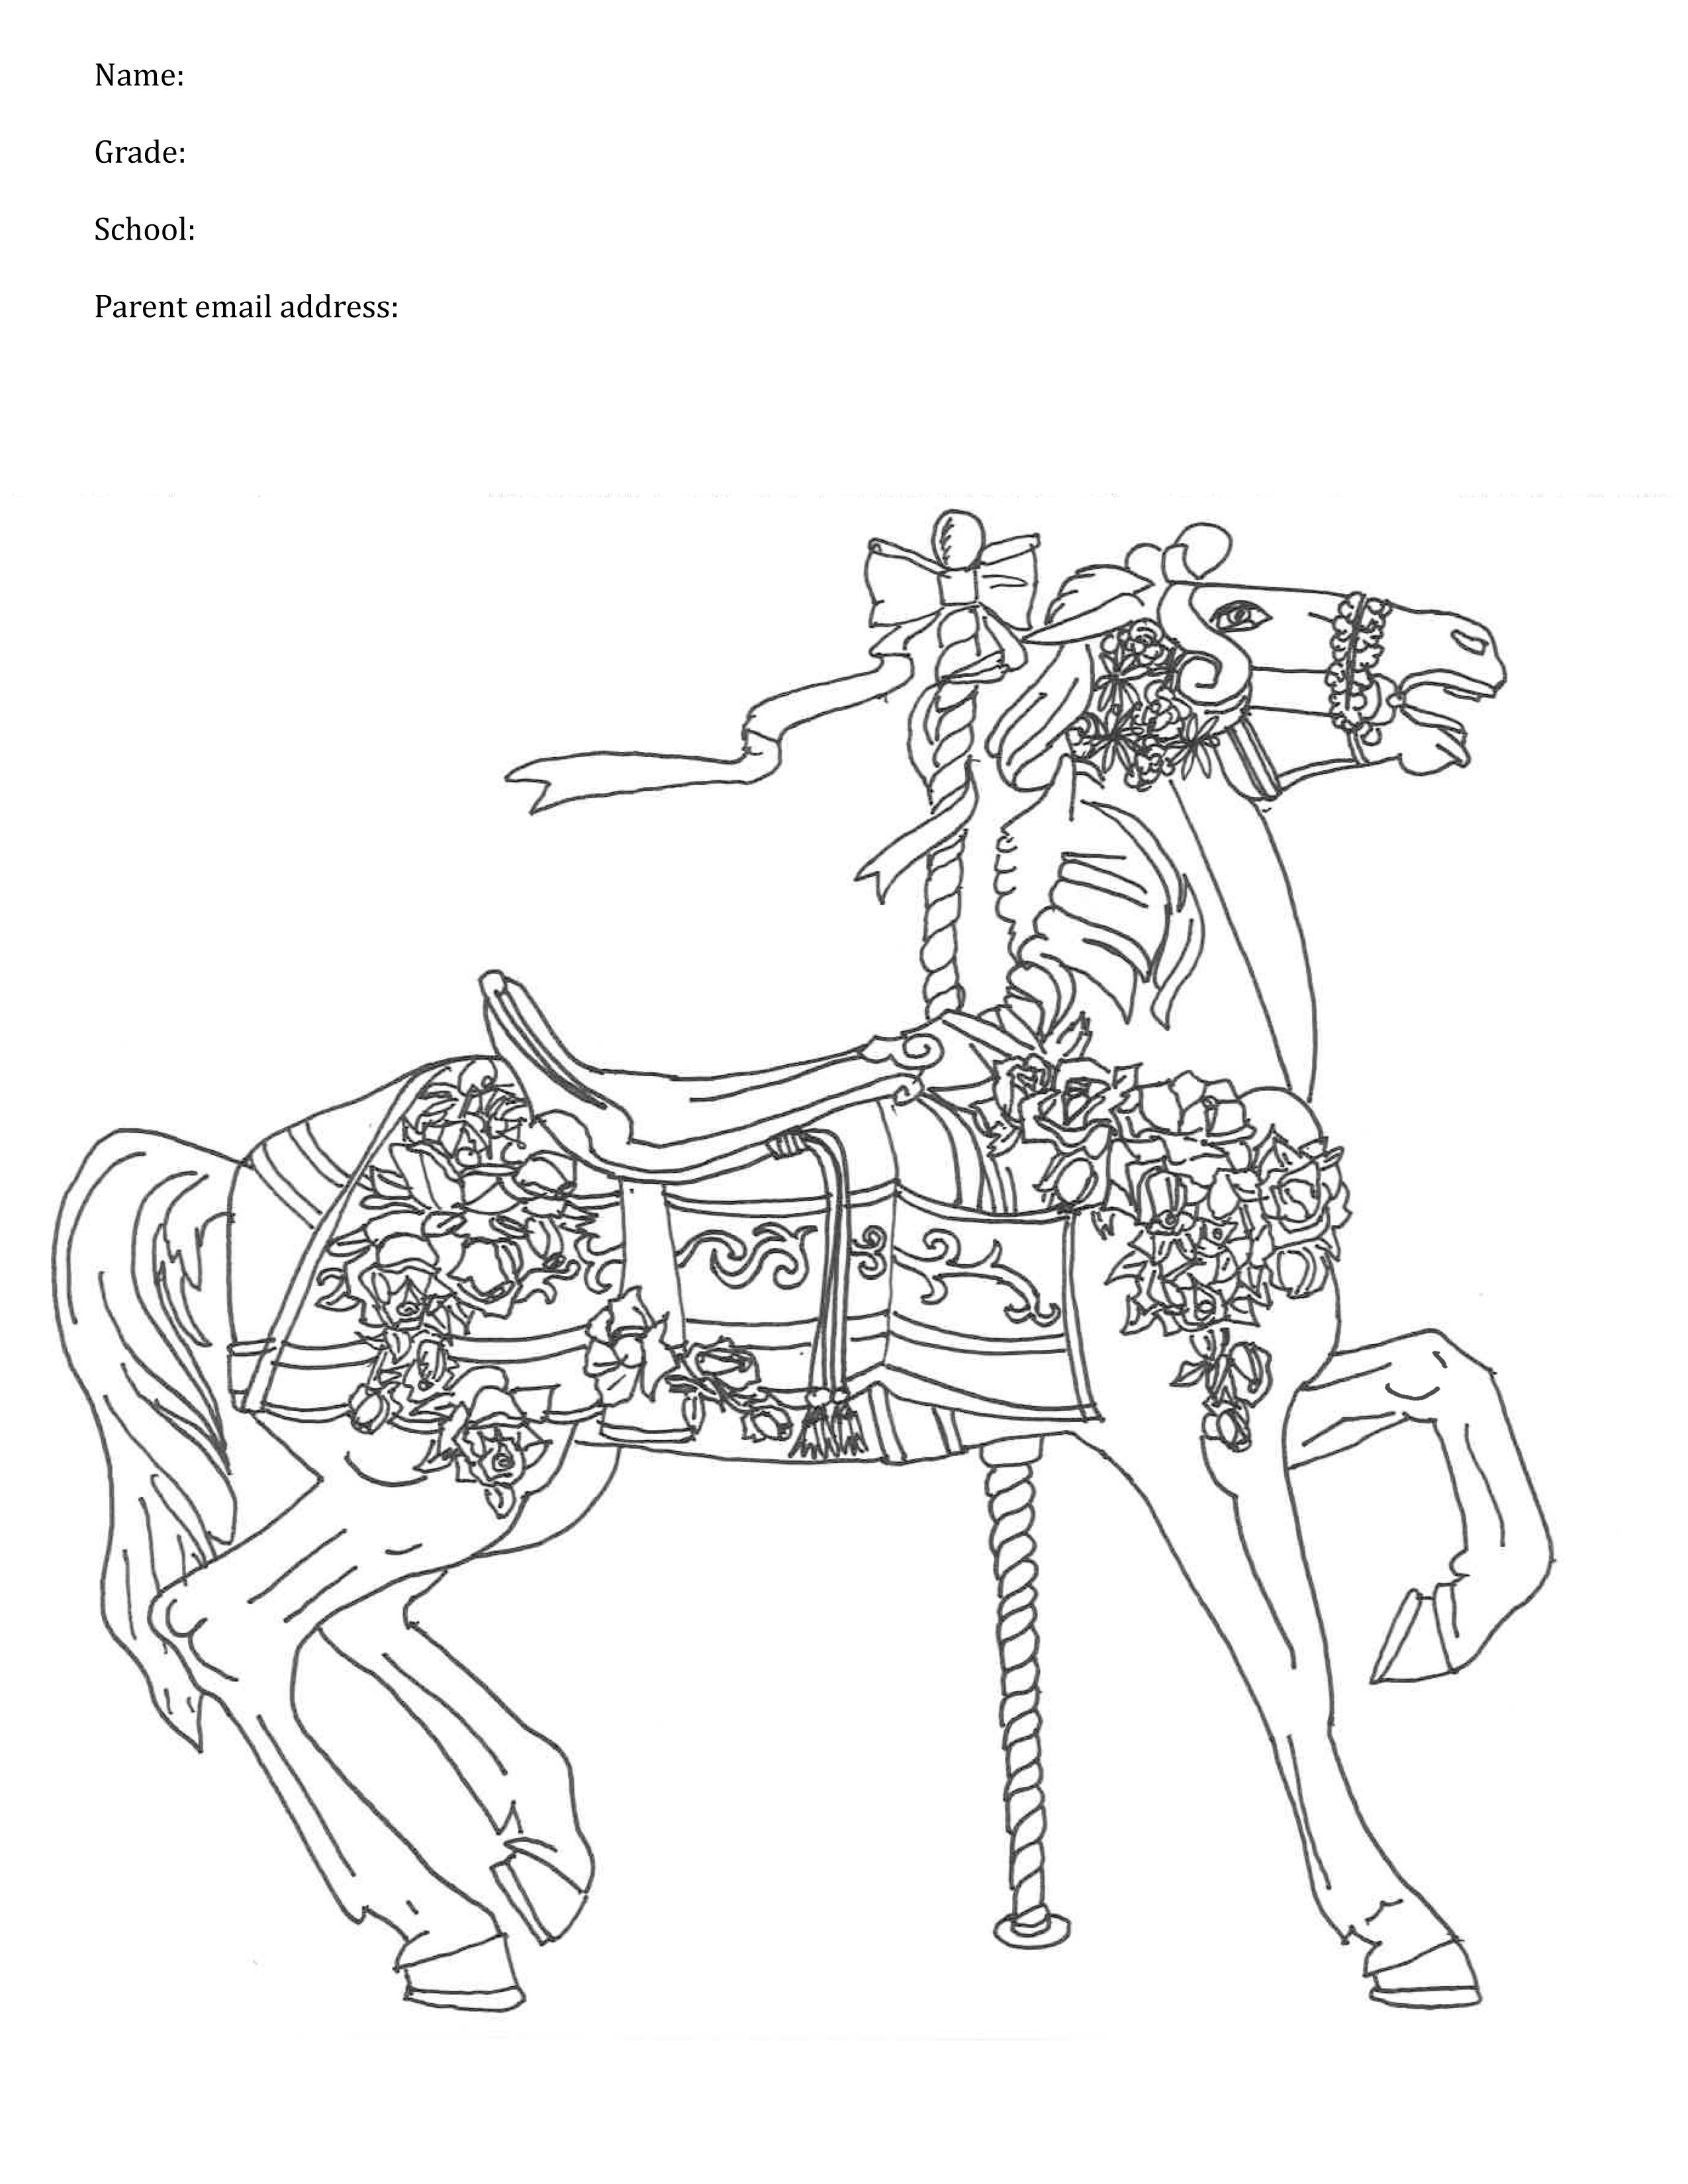 Free coloring pages of carousel animals | Animal coloring ...